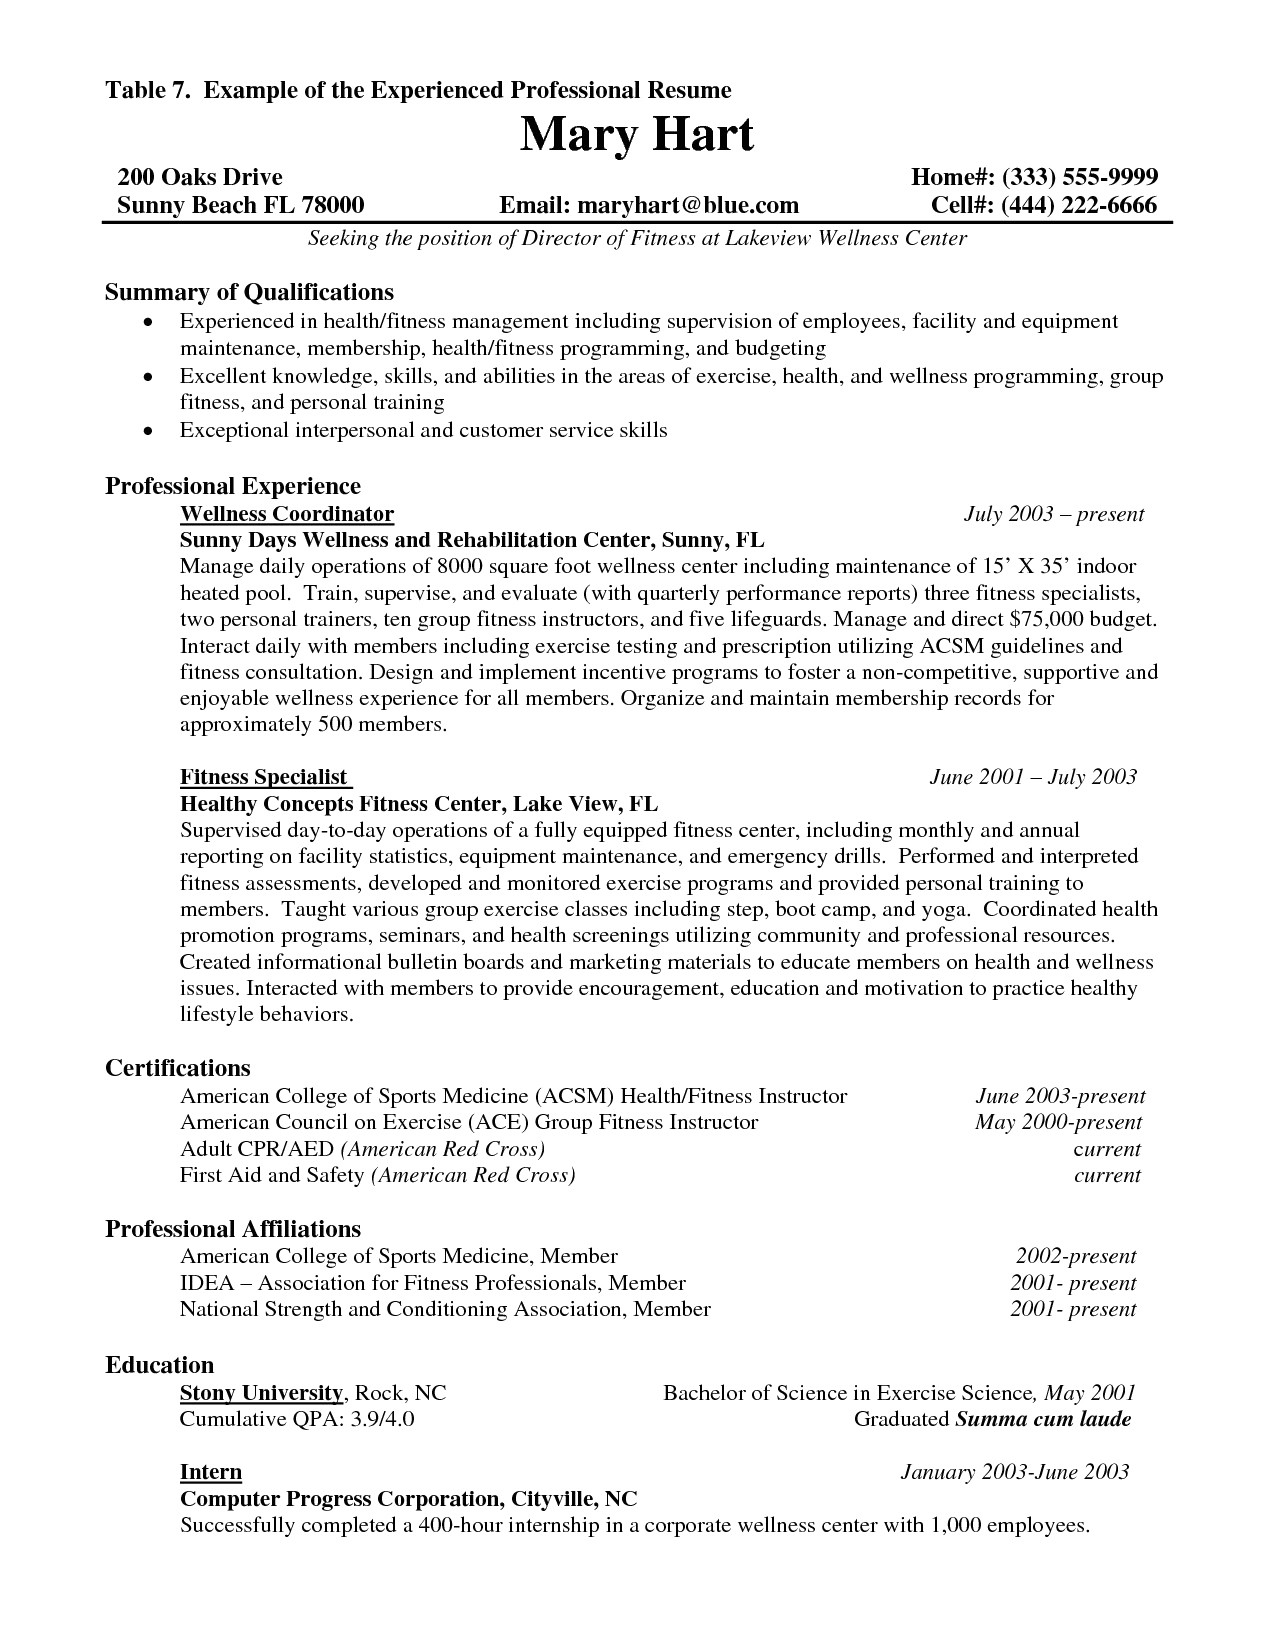 education based resume